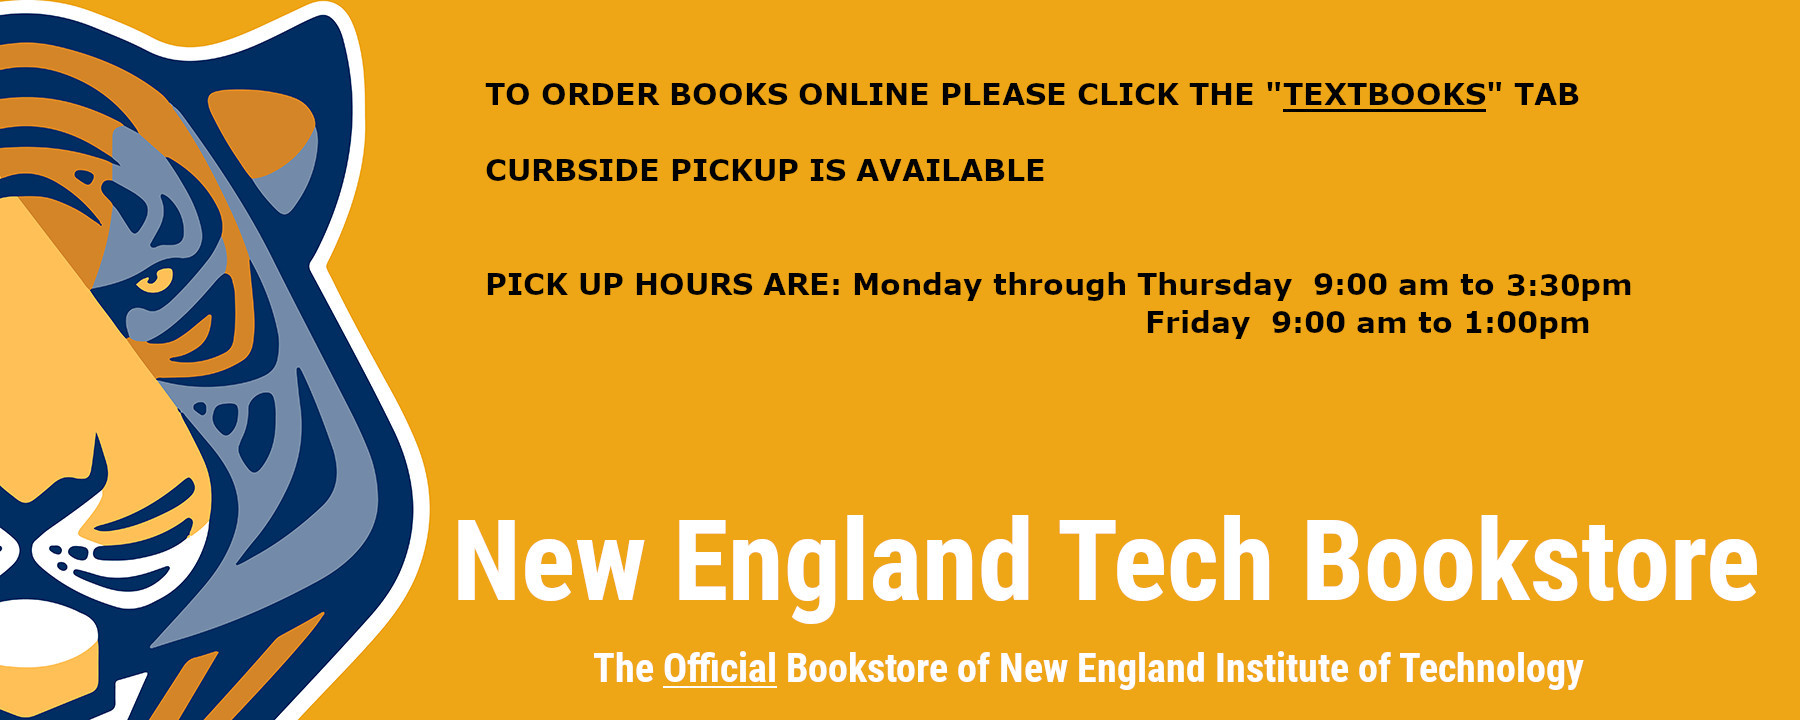 New England Tech Bookstore. The Official Bookstore of New England Institute of Technology